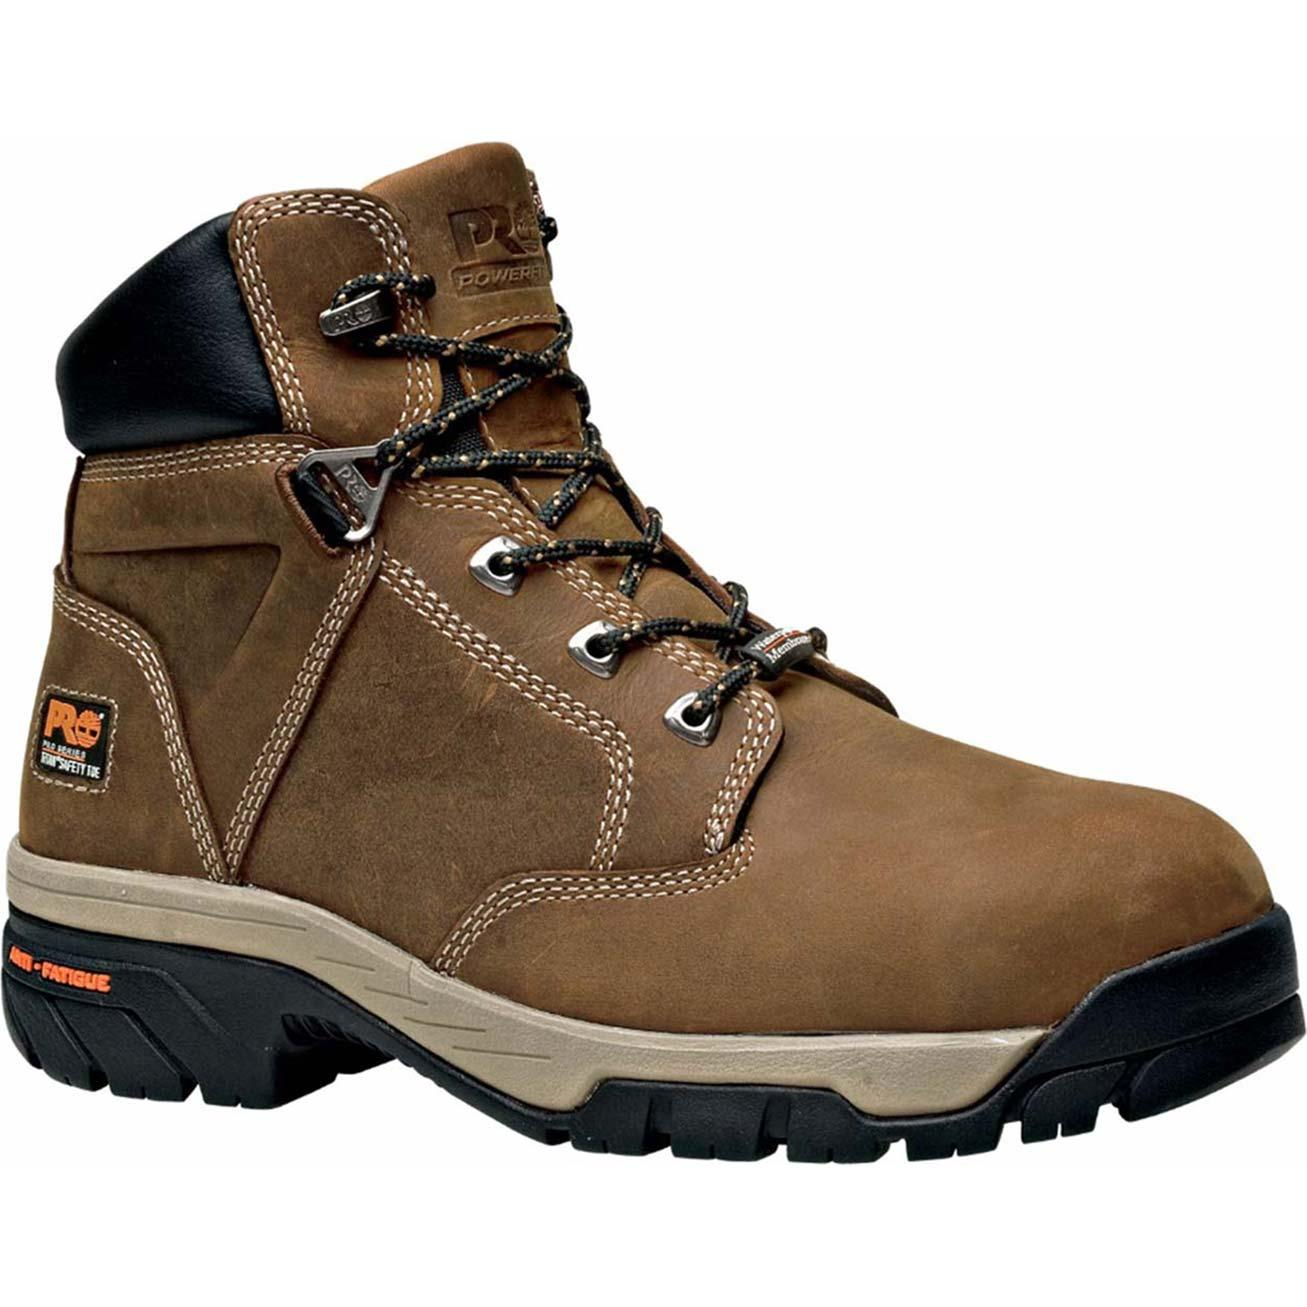 35d5a127447 Timberland PRO Helix Alloy Toe Waterproof Work Boot